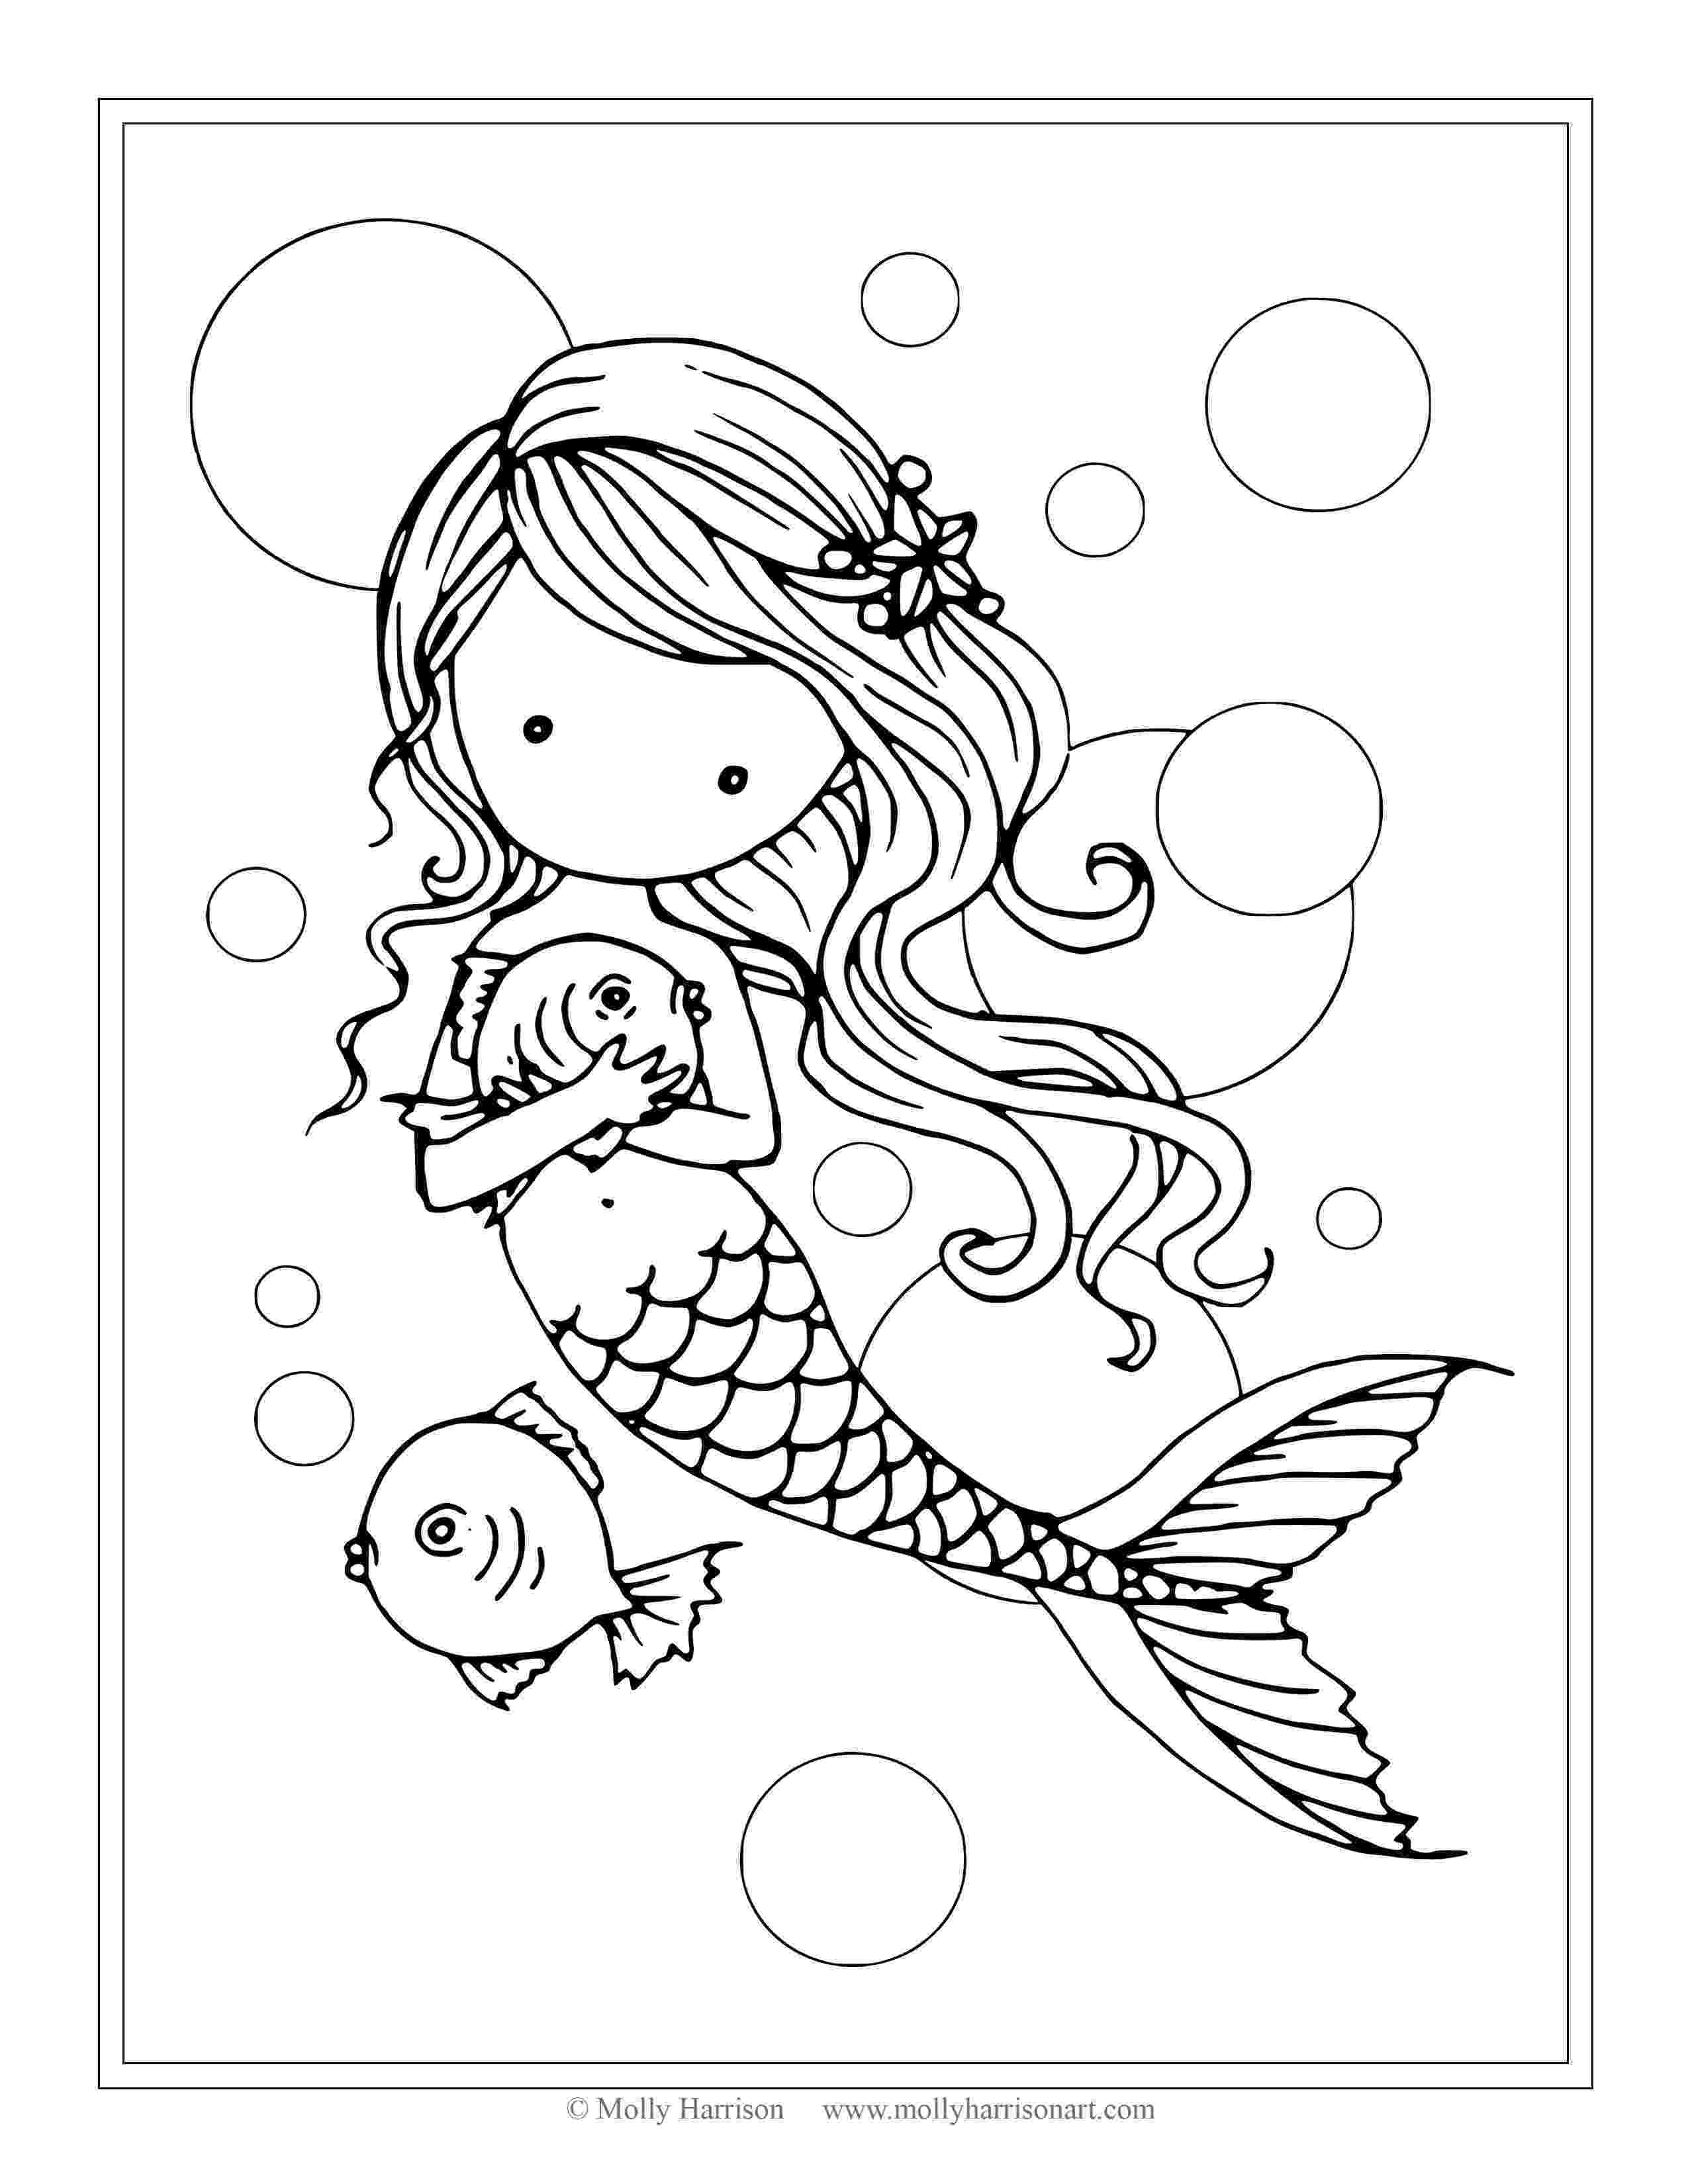 mermaid coloring sheets free mermaid with fish coloring page by molly harrison sheets mermaid coloring